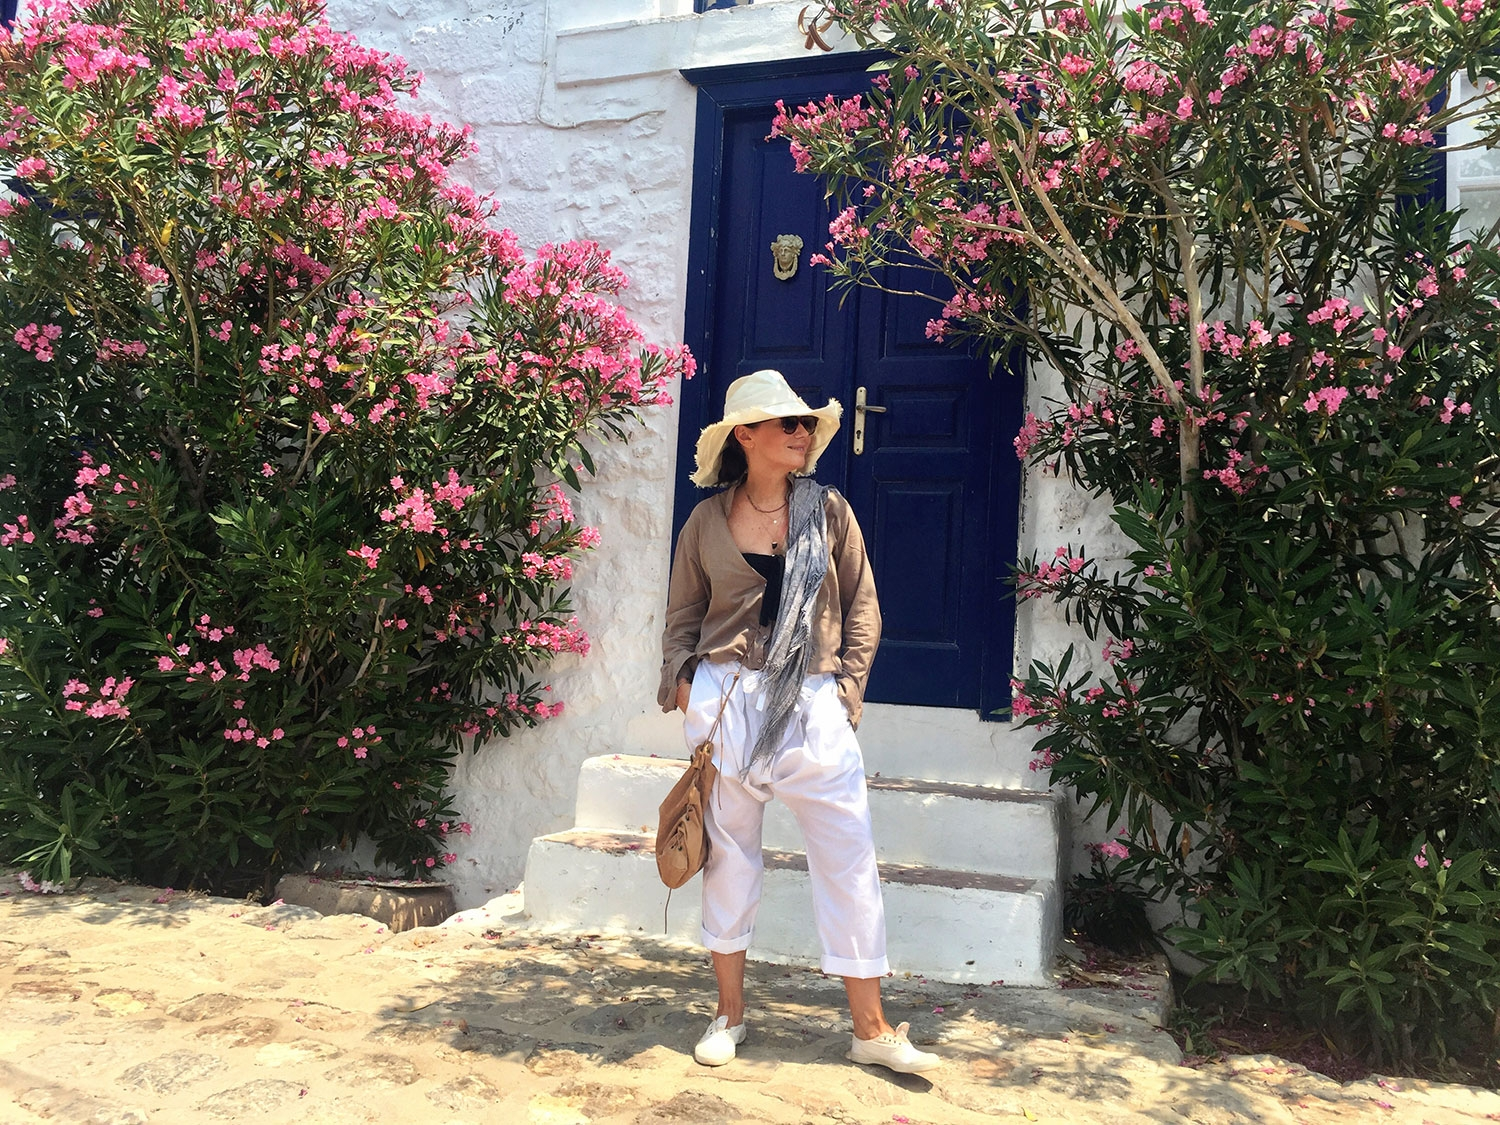 Nicky Zimmermann stands in front of a traditional white and blue Greek building, with native flowers either side of her